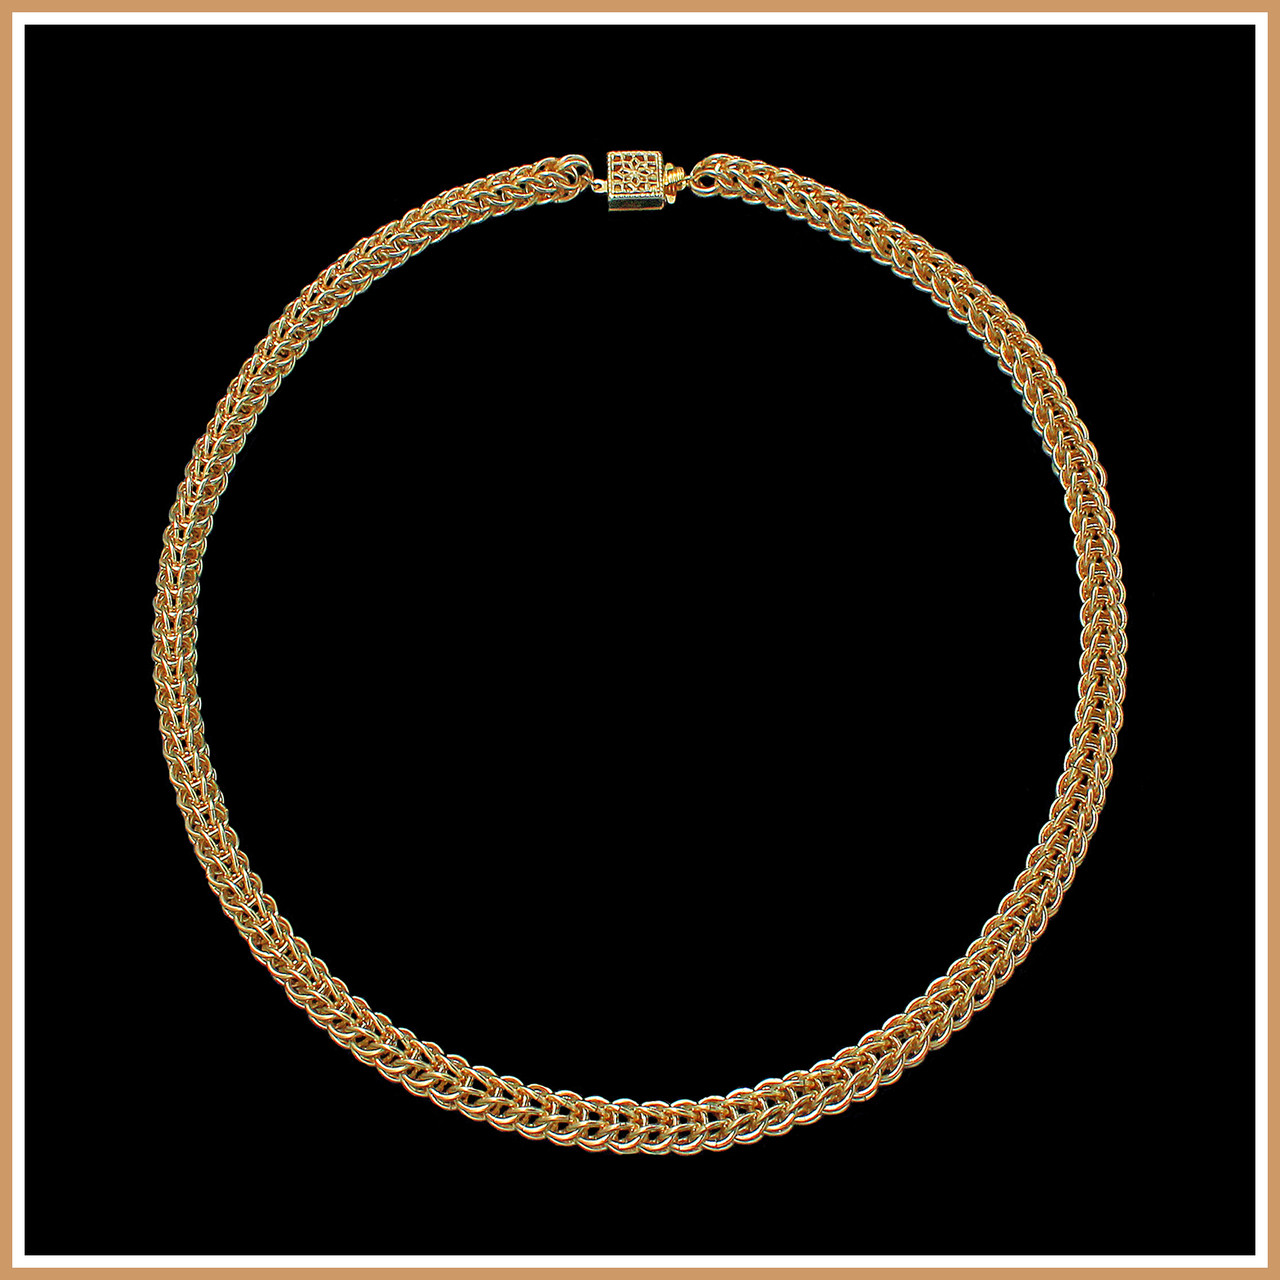 9fb7235105 Gold Persian Chain Necklace | Shop Gemstone, Gold and Silver Jewelry